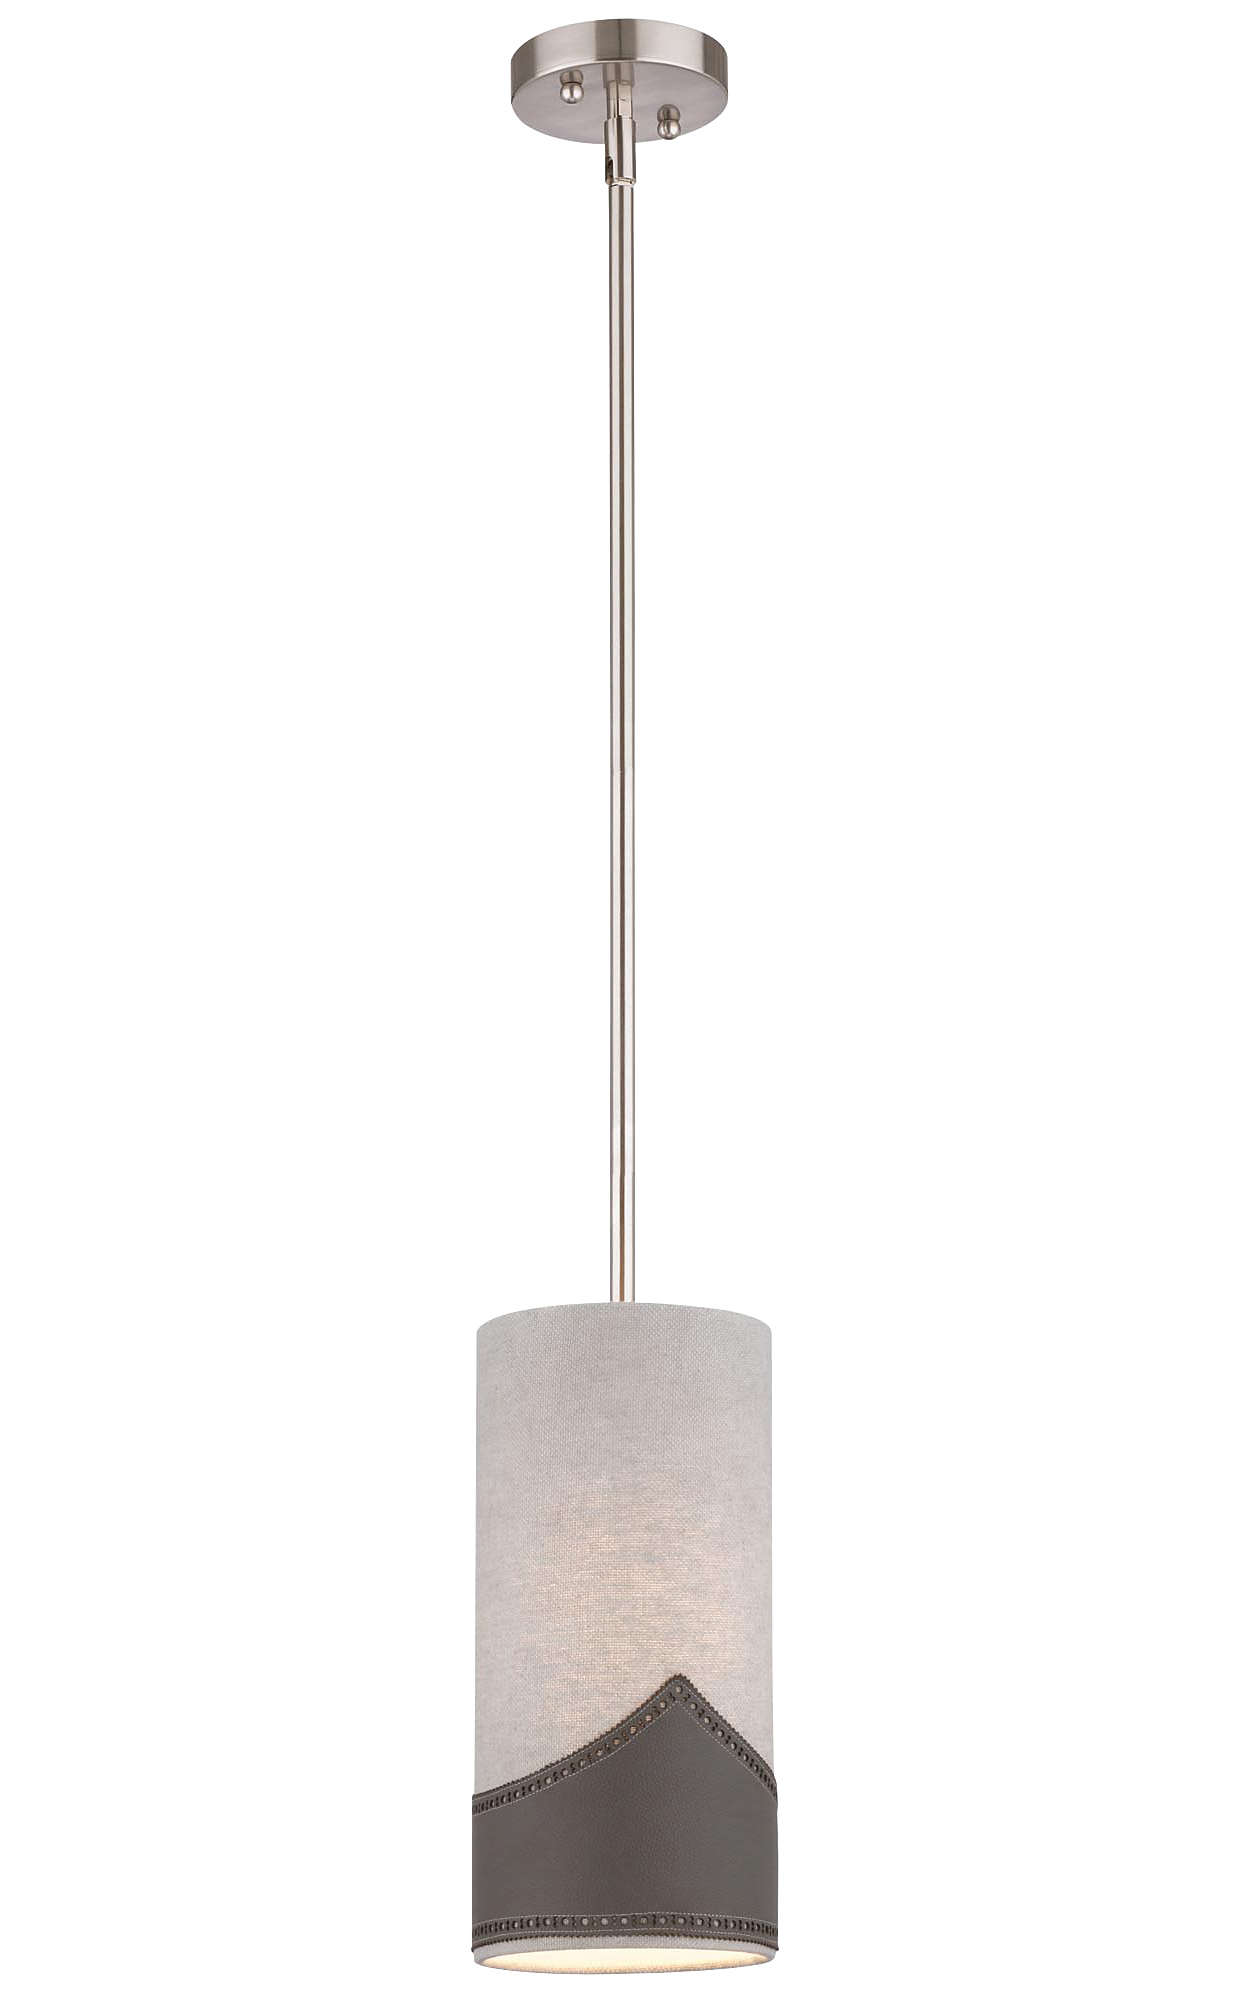 Wing Tip 1-light Pendant in Satin Nickel finish